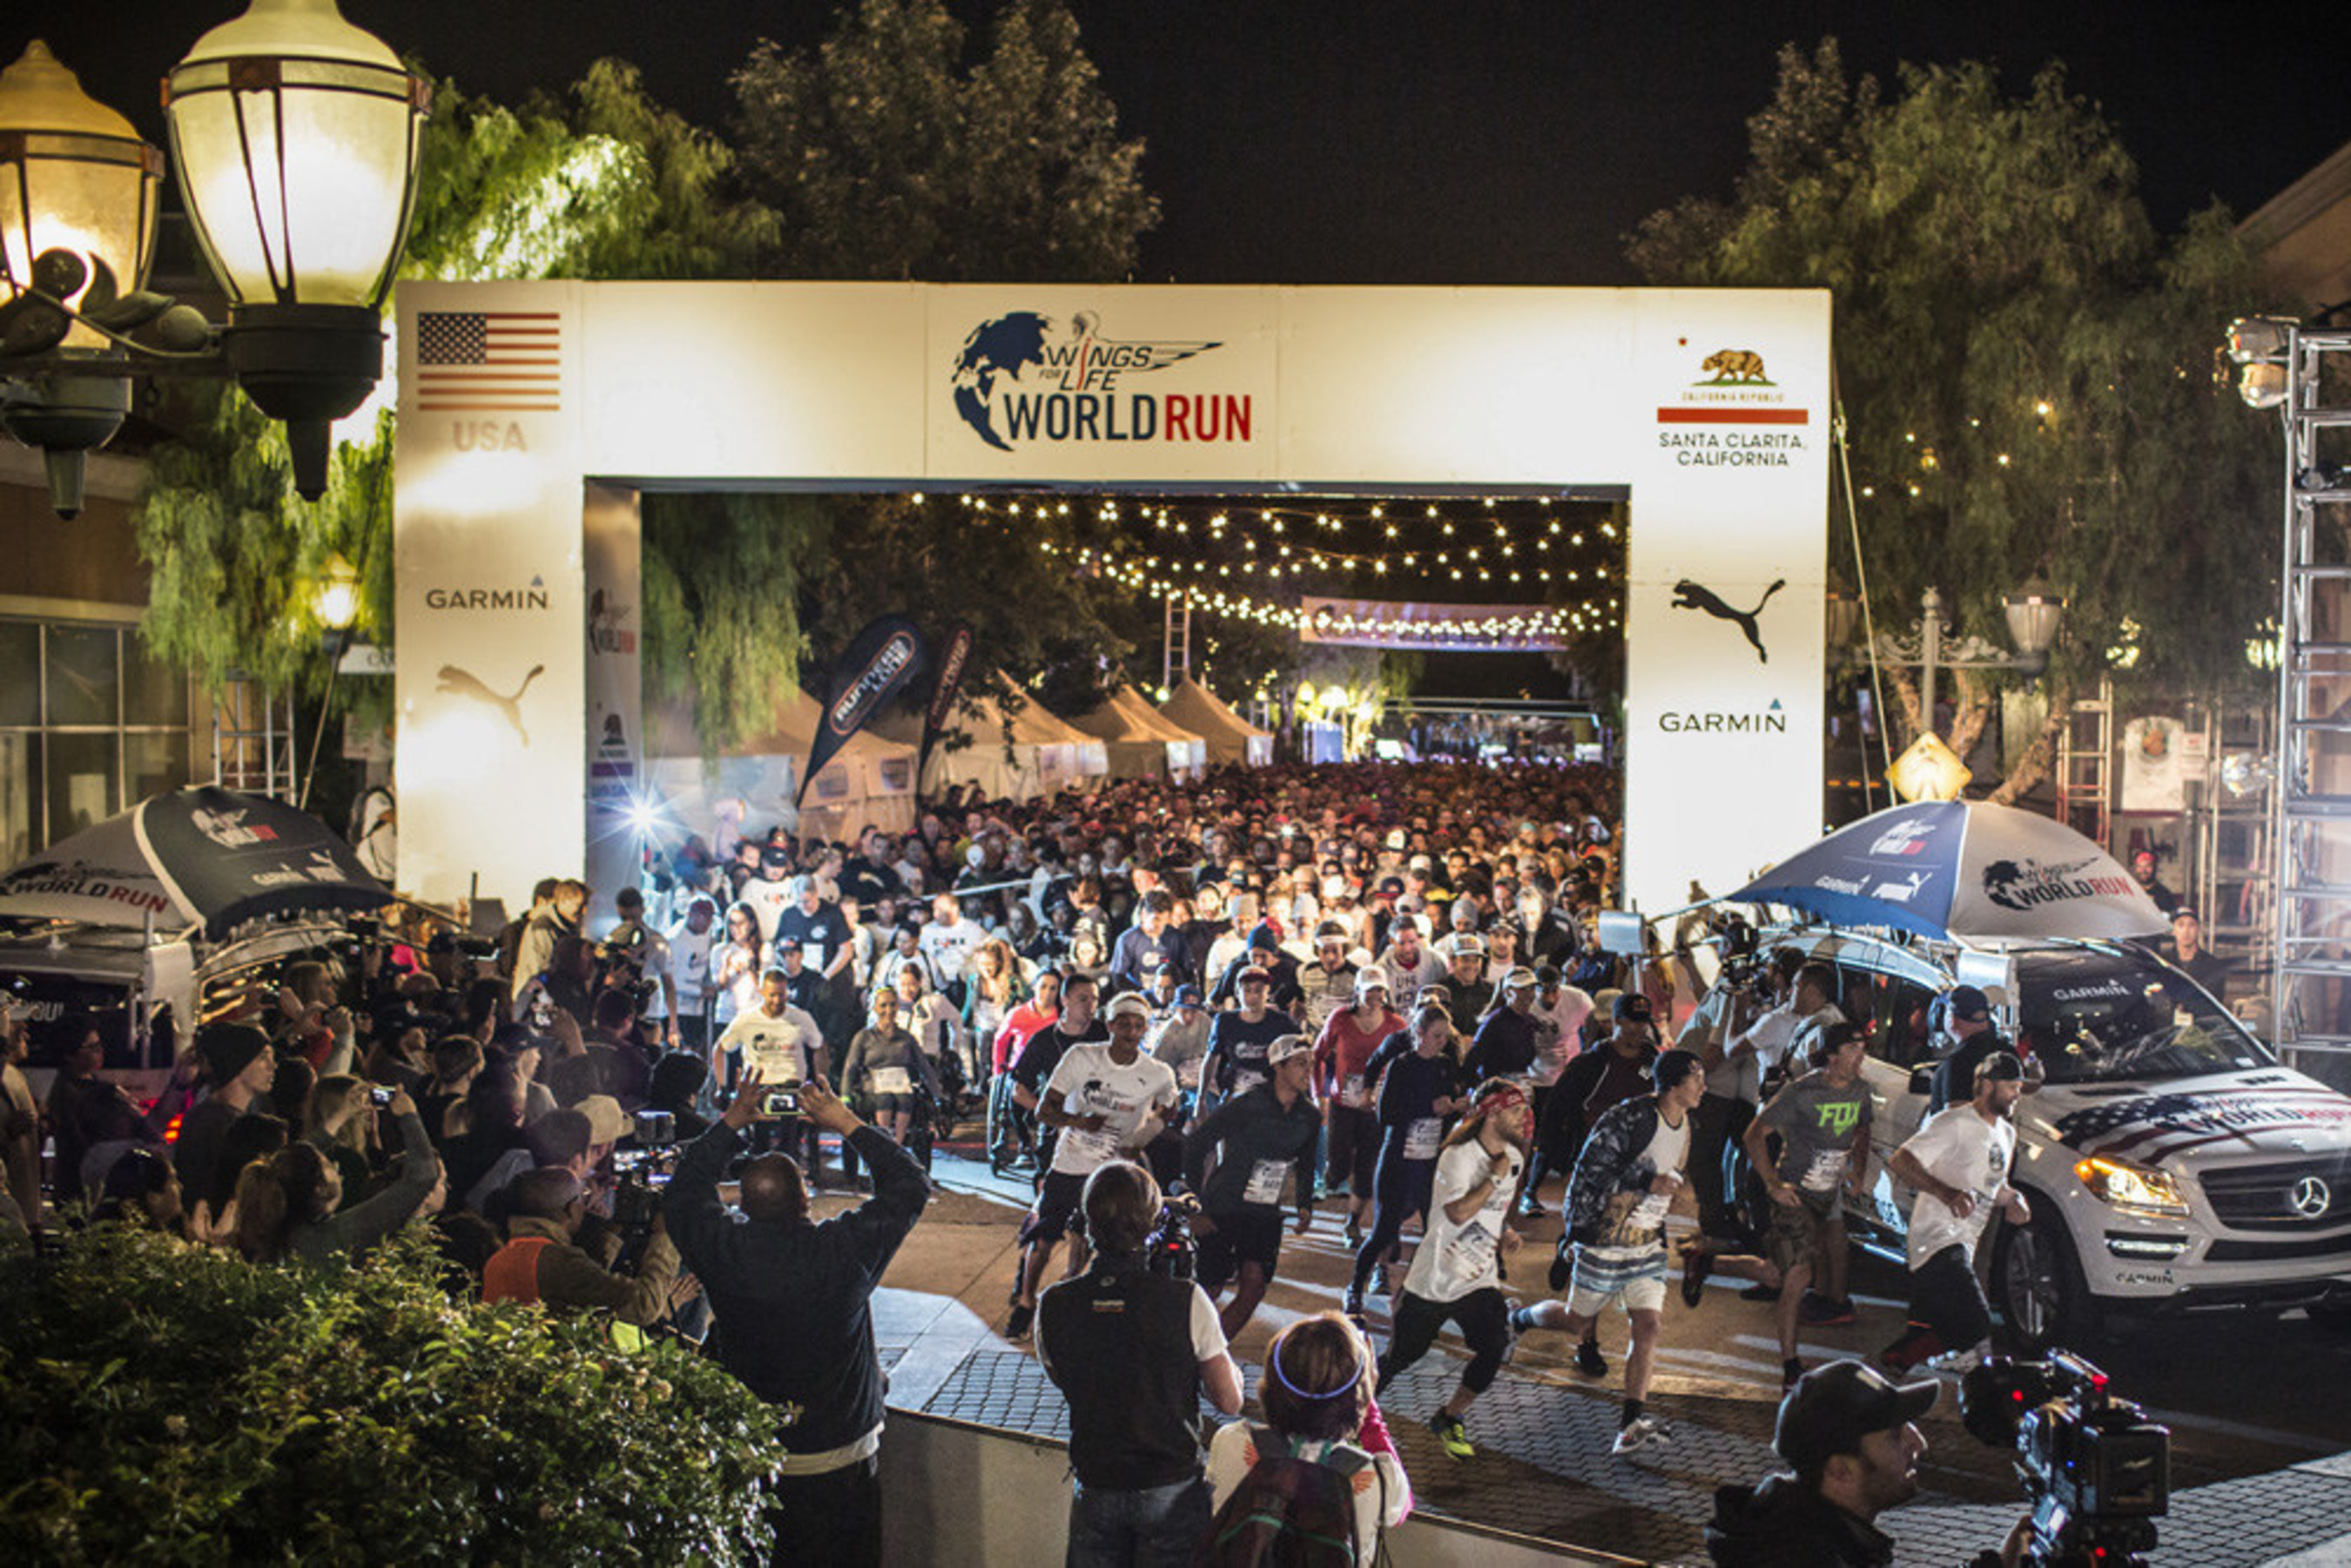 More than a thousand runners in the Wings for Life World Run take off in Santa Clarita, Calif. on May 3, 2015.  The next run is confirmed for May 8, 2016, with all proceeds dedicated to spinal cord injury research.